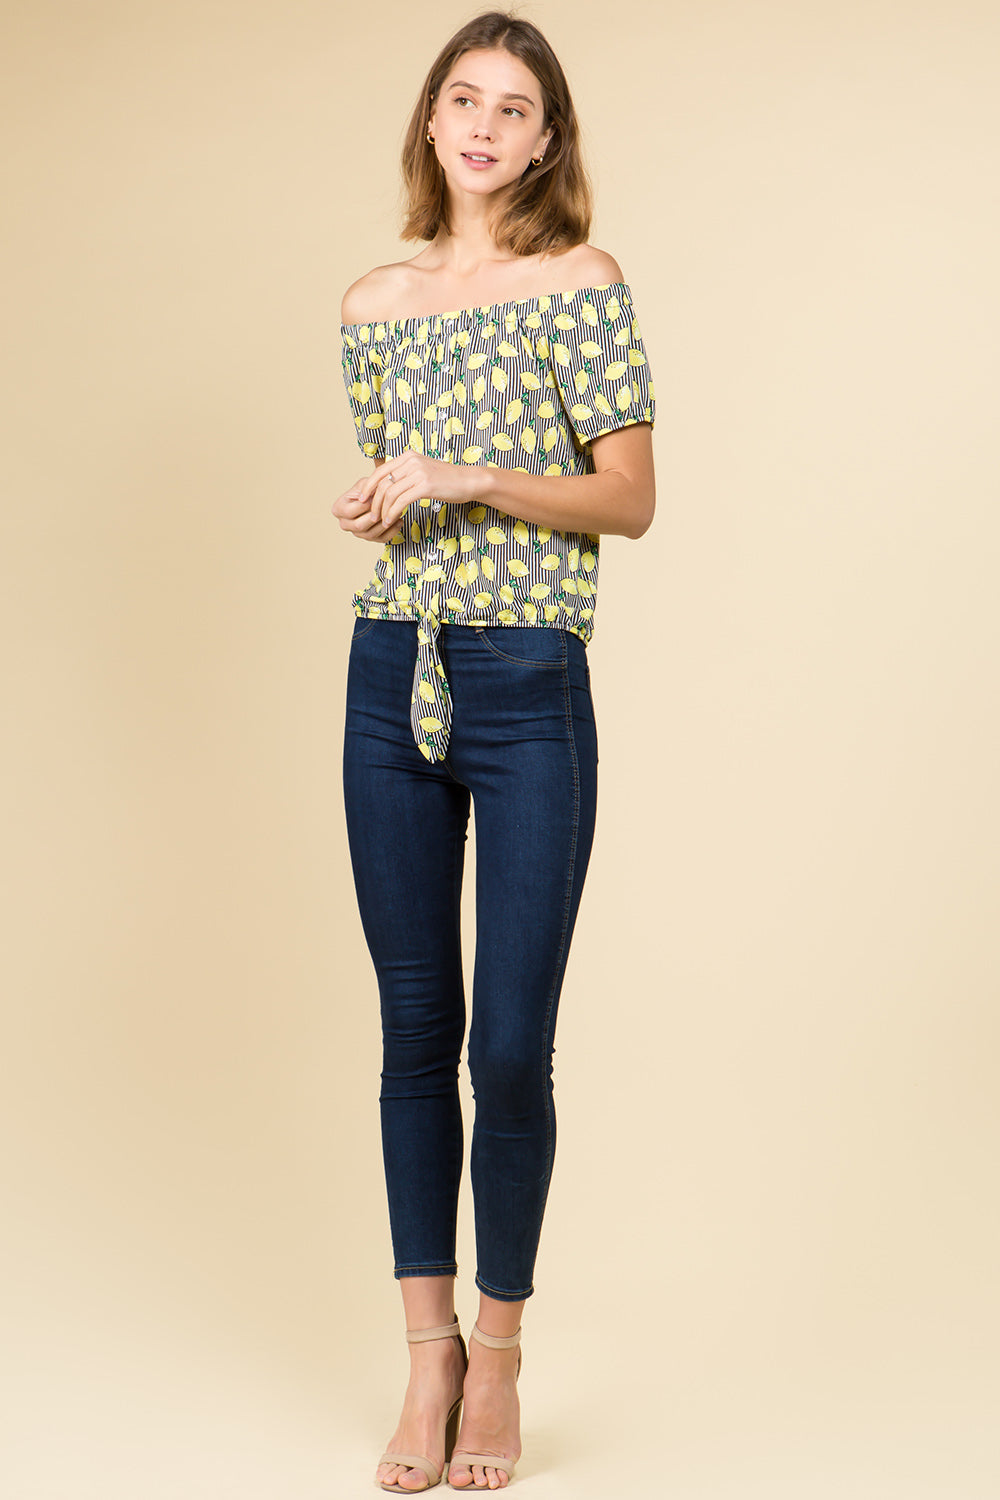 OFF SHOULDER TIE FRONT PULL OVER IN LEMON PRINT WITH SHORT SLEEVE